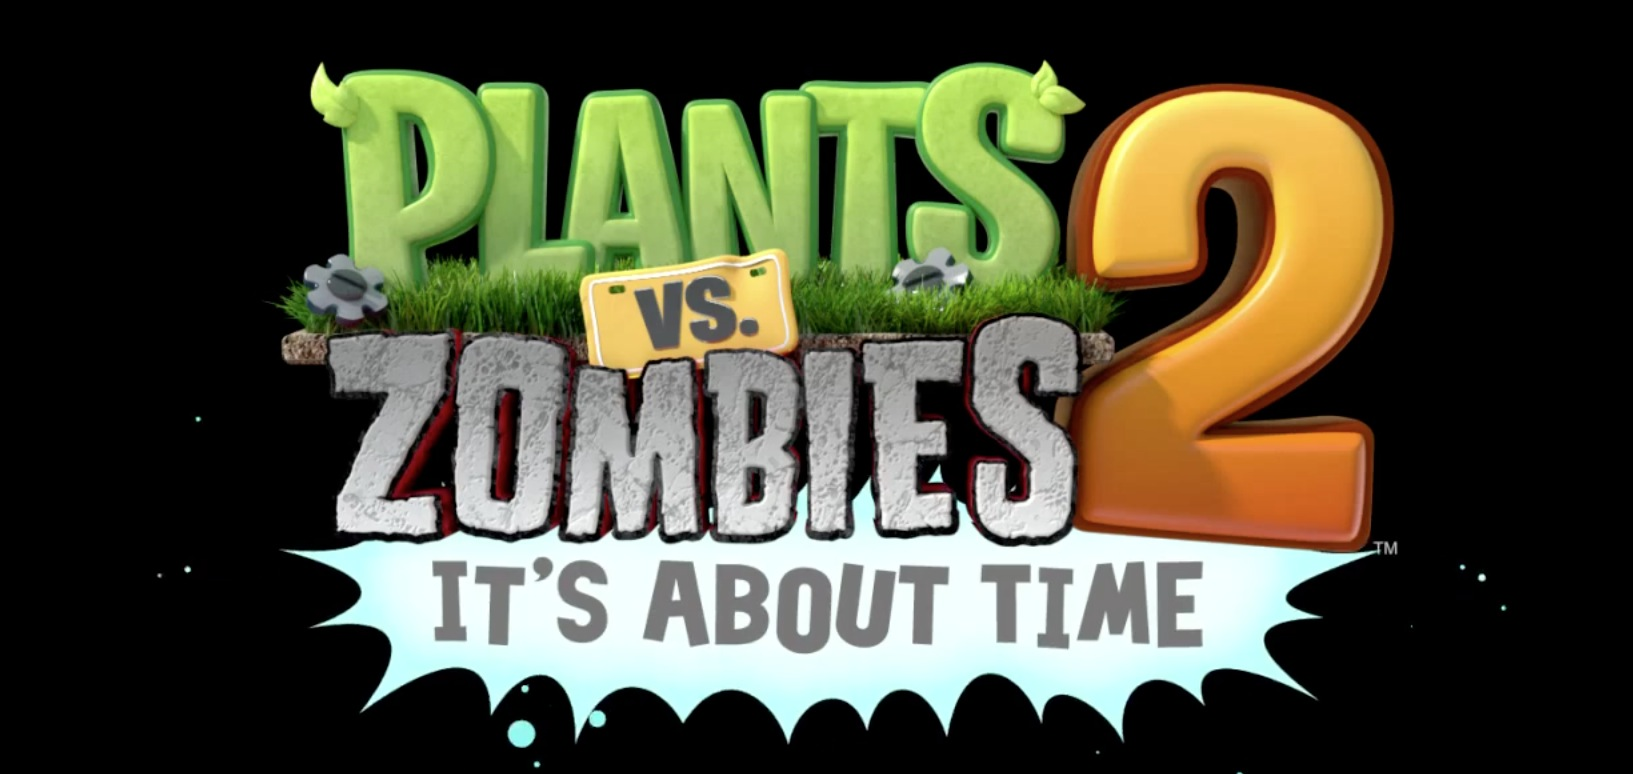 Android iOS plants vs zombies